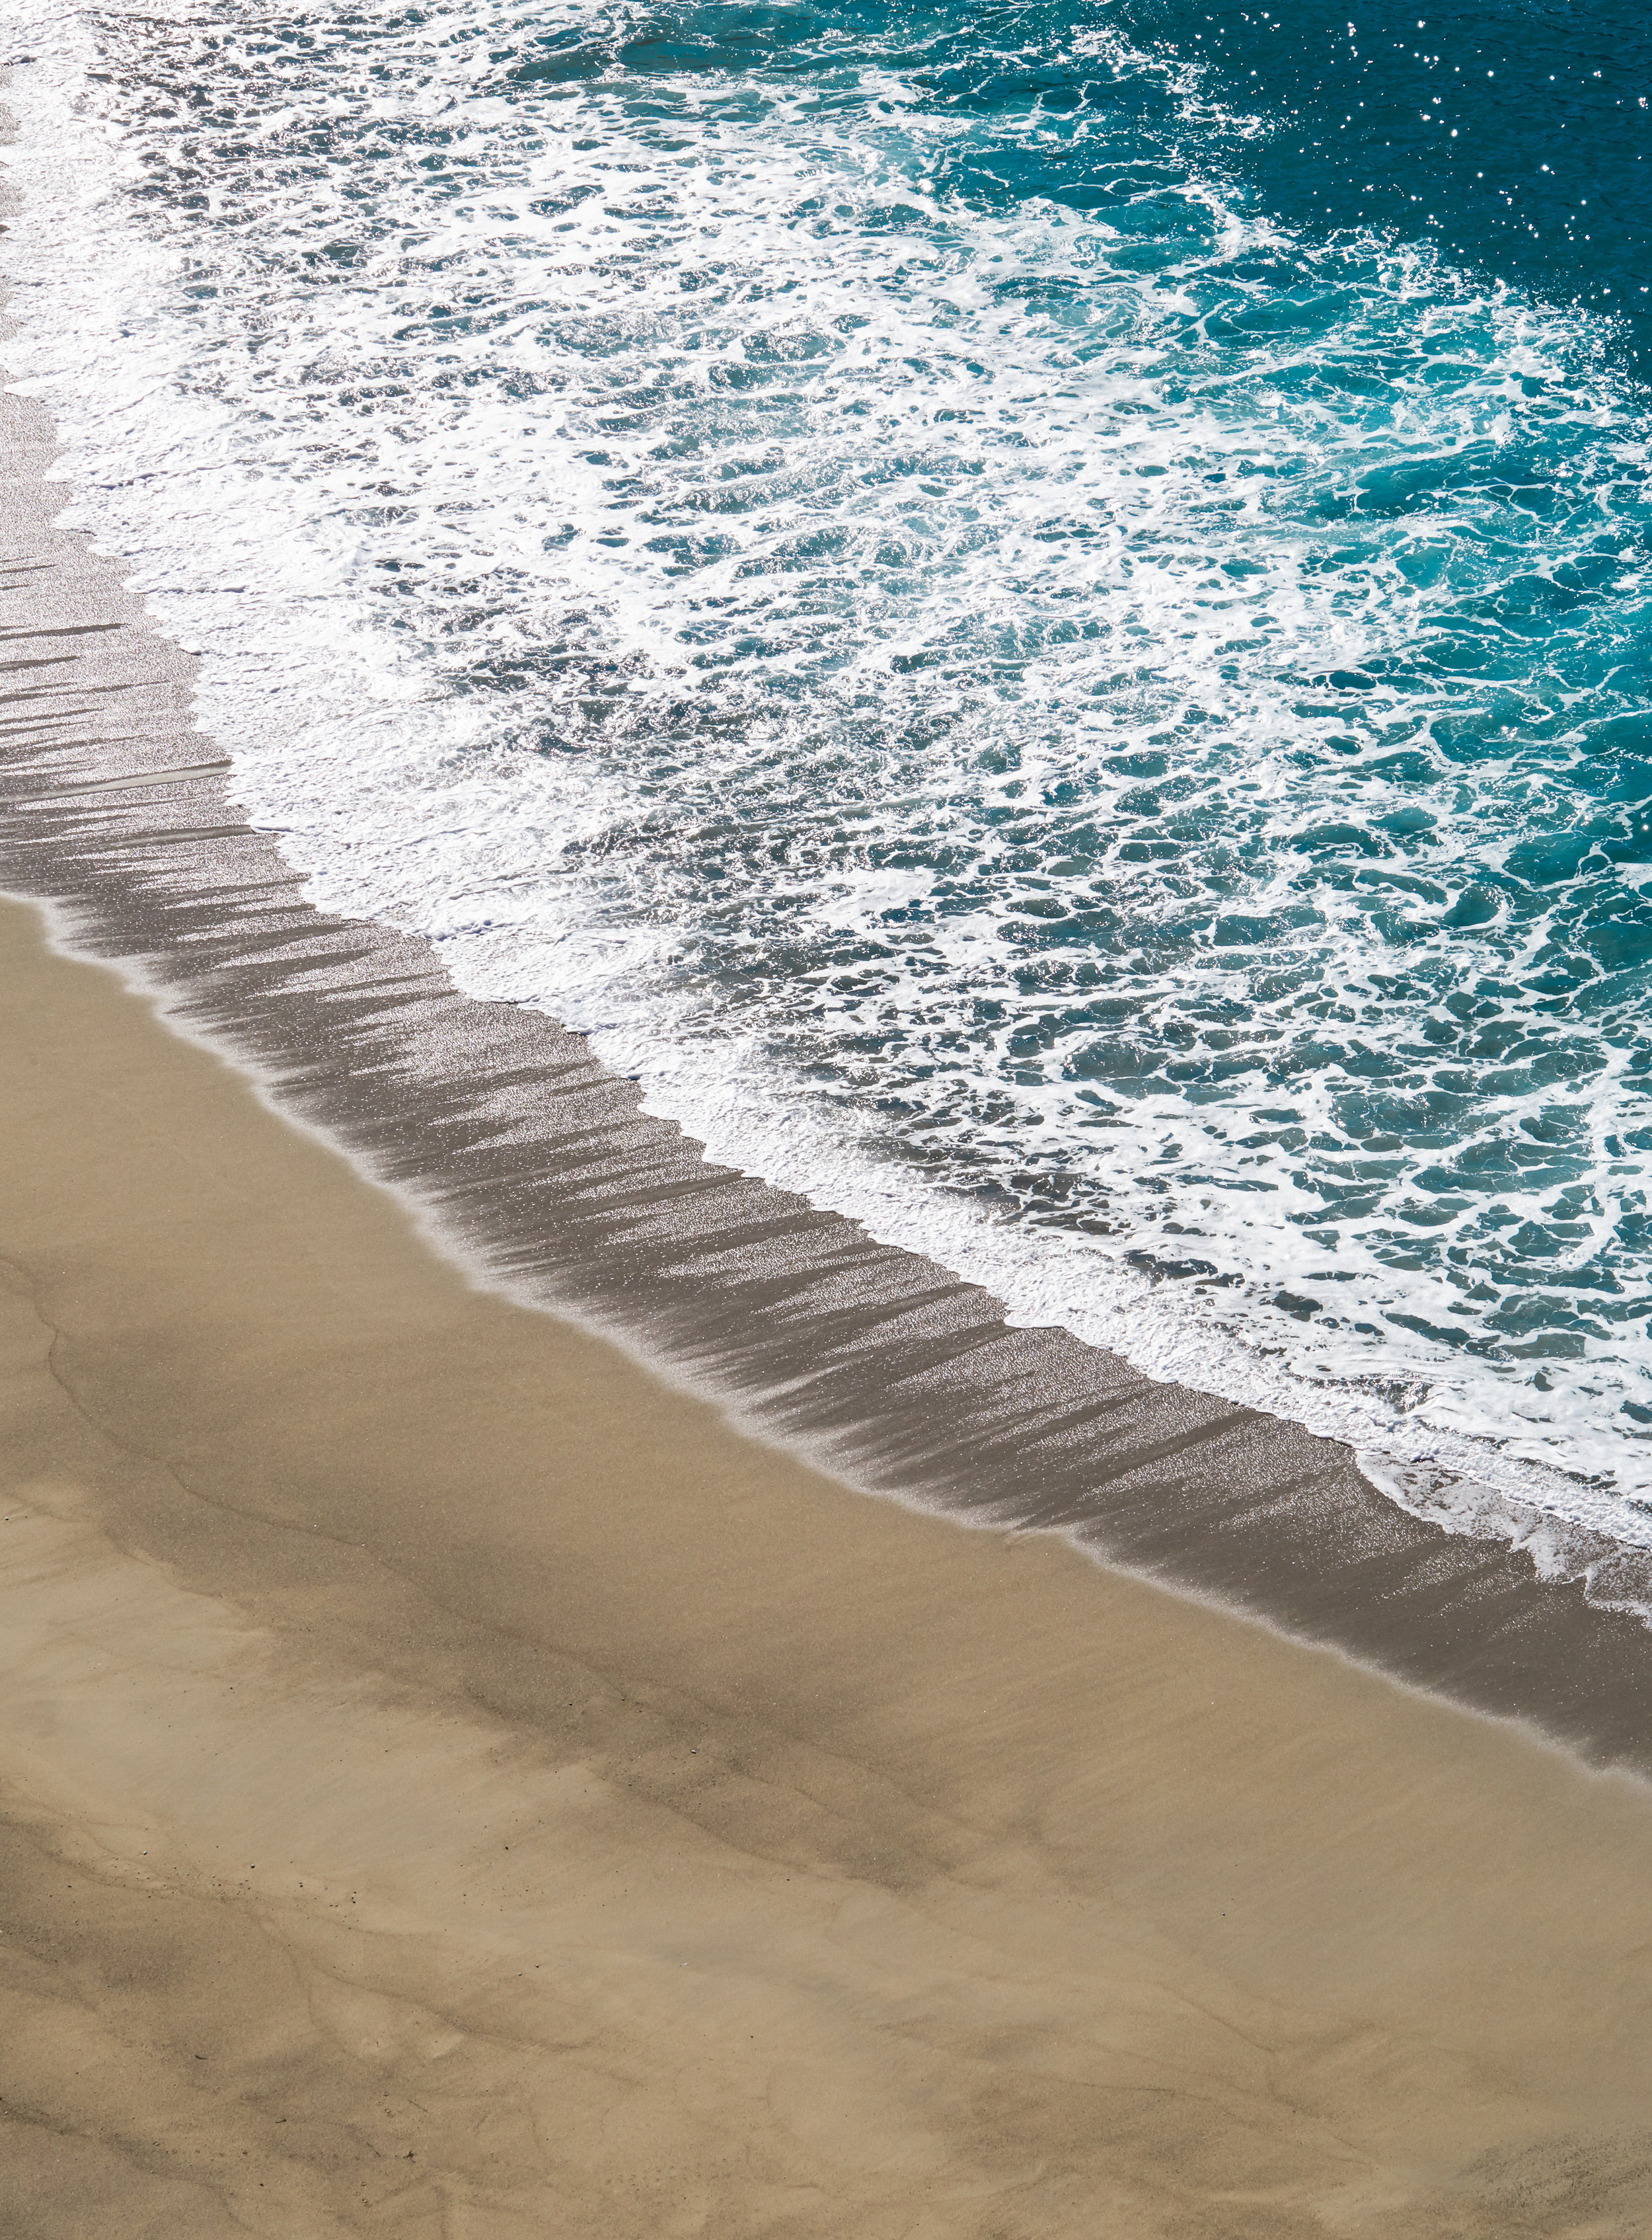 California waves and beach Toronto Travel Photographers - Suech and Beck